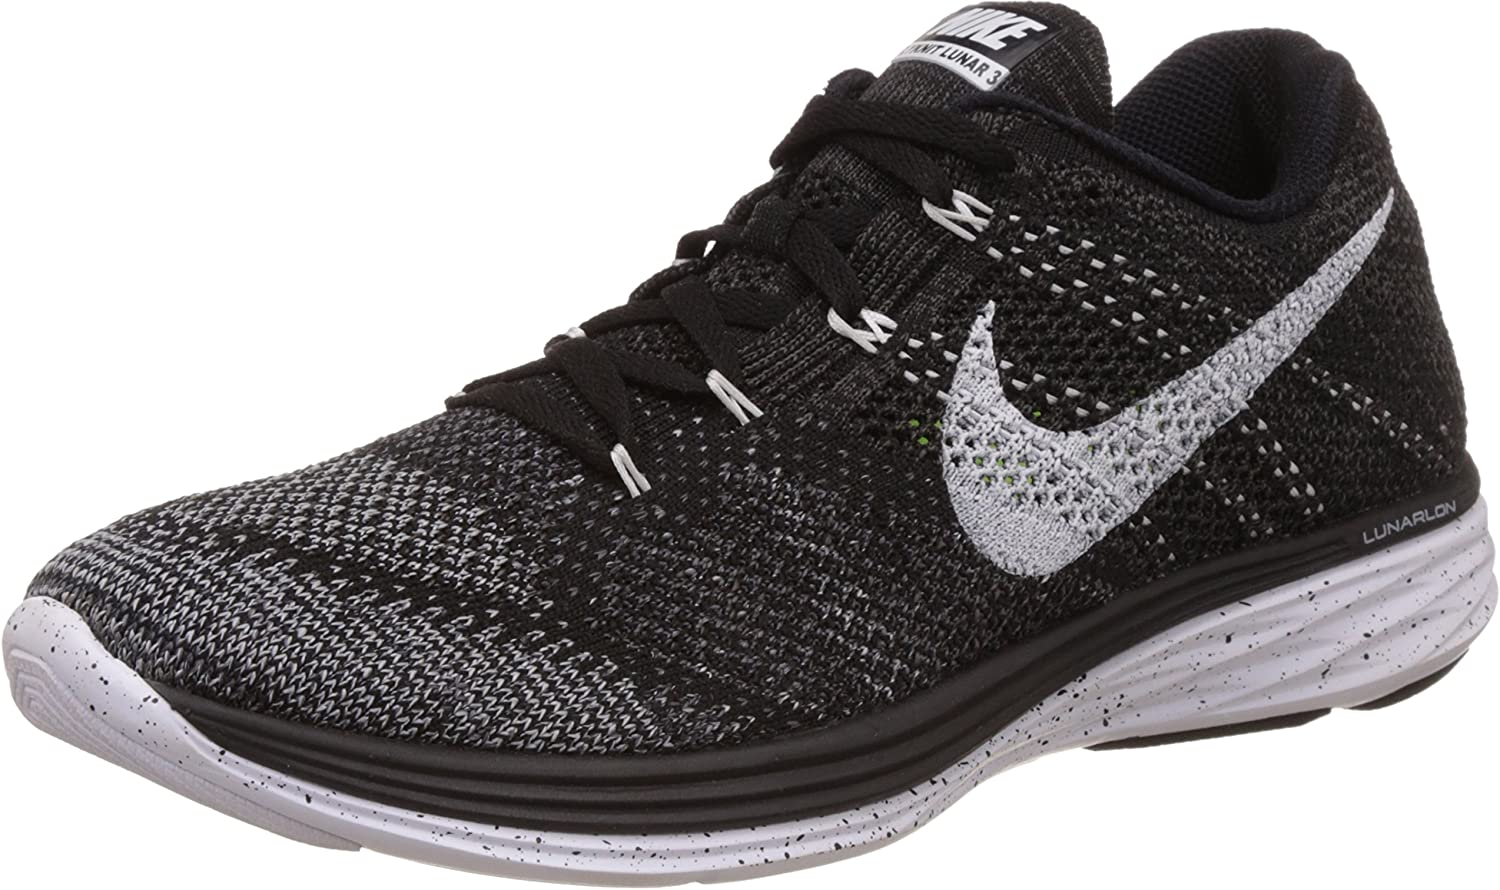 Nike Men's Flyknit Lunar3 Running Shoe